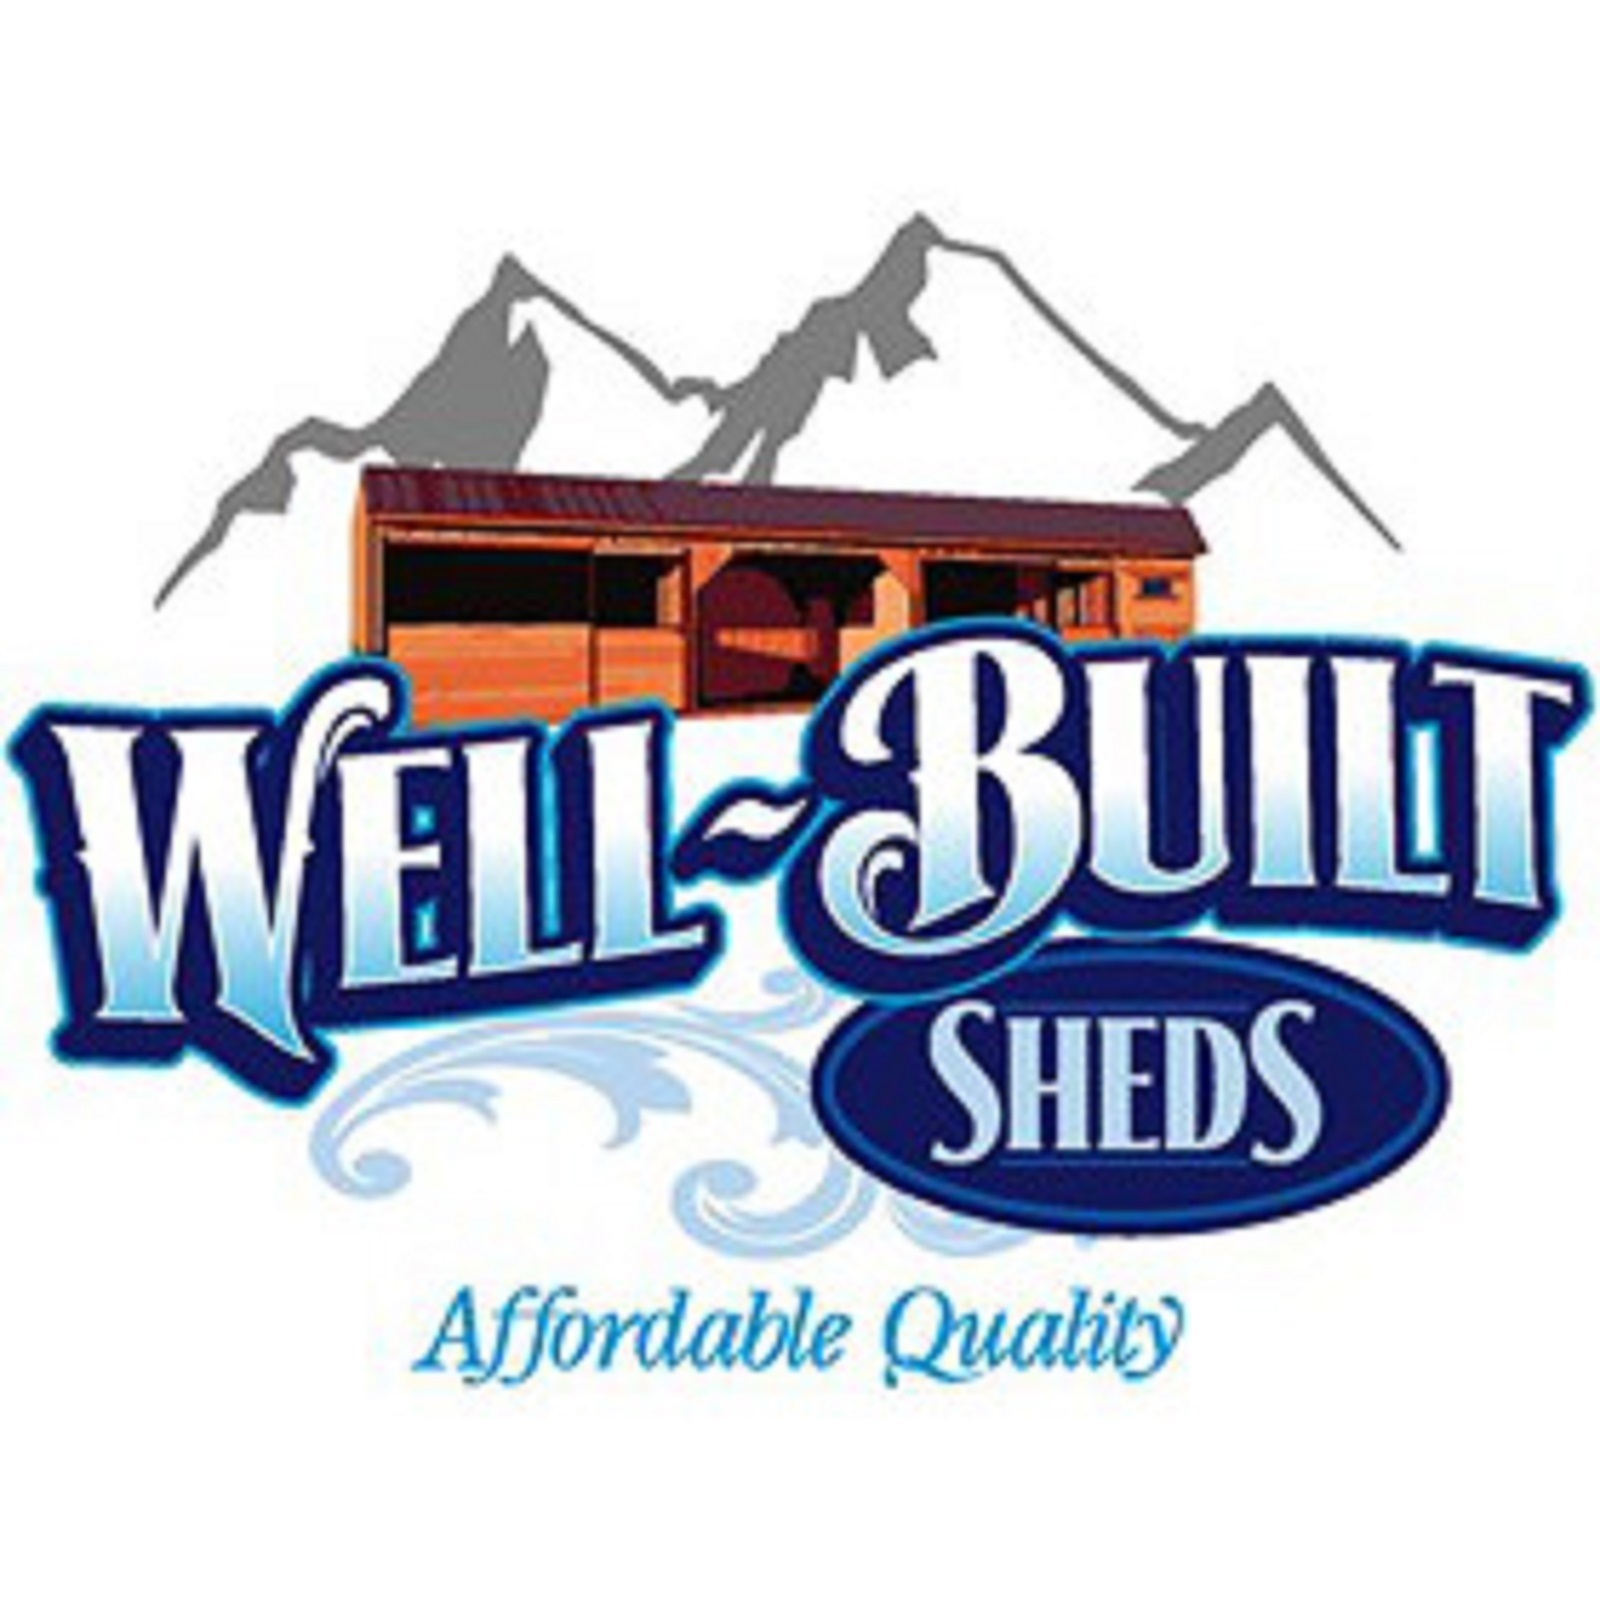 Well-Built-Sheds-nexgen.jpg